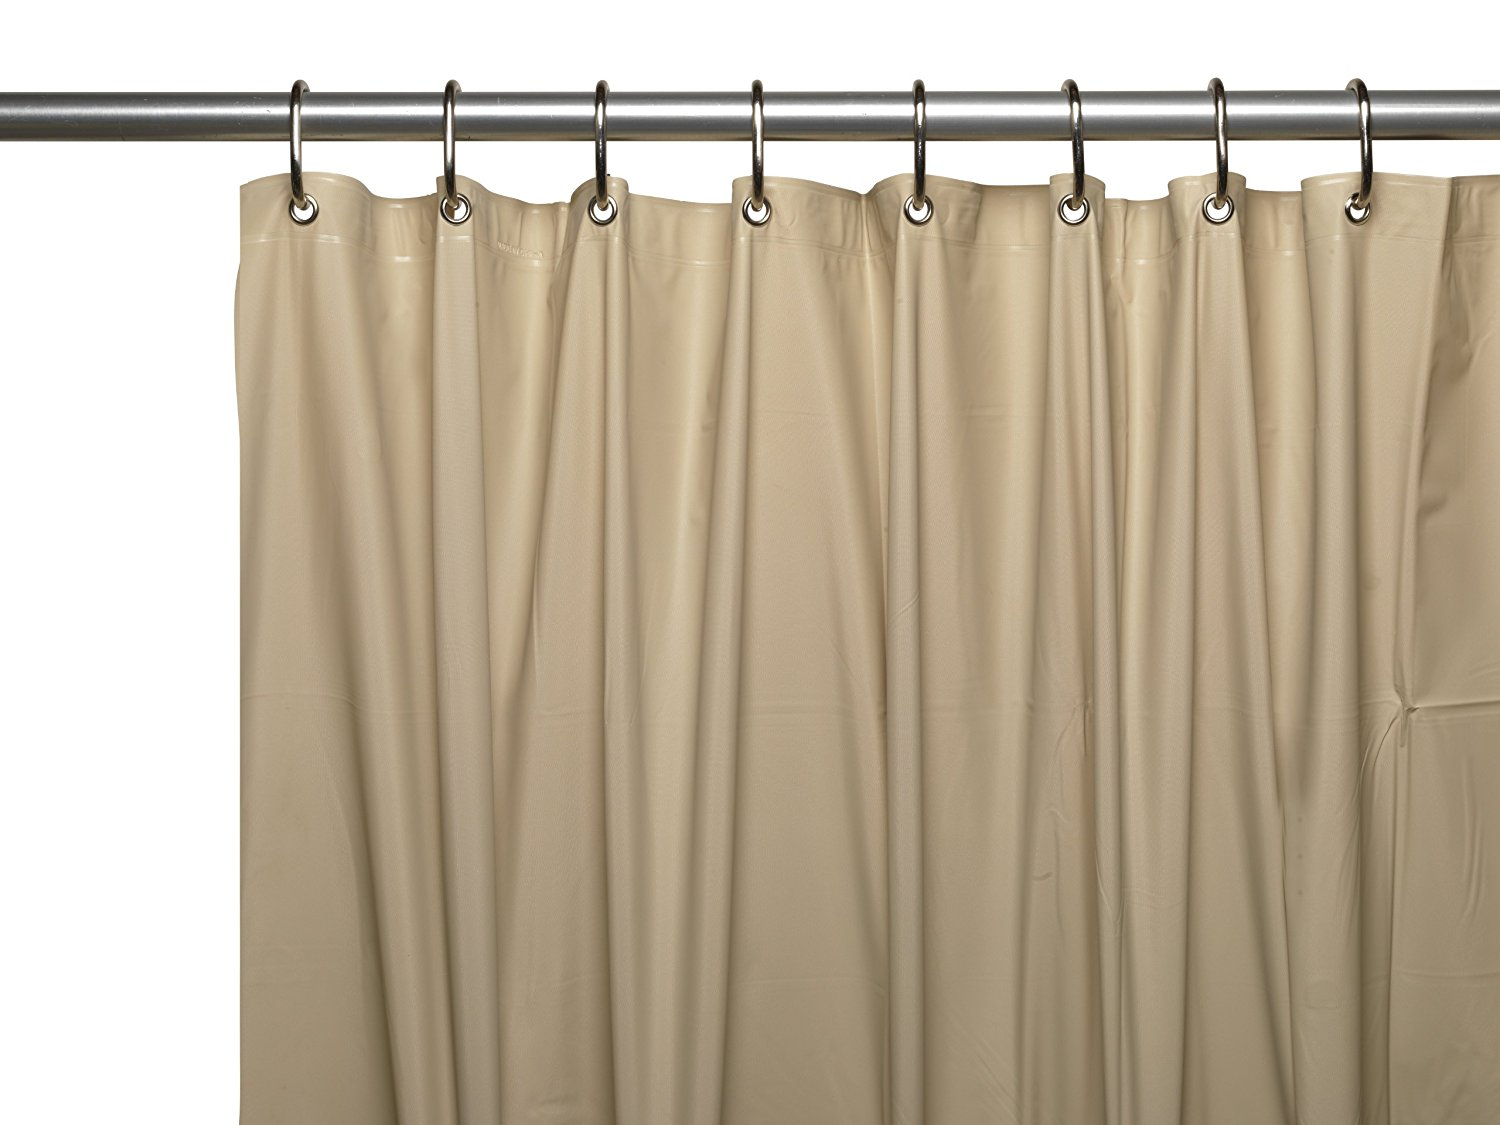 Shower Curtains: Carnation Home Fashions 72 By 84-Inch Waterproof Vinyl